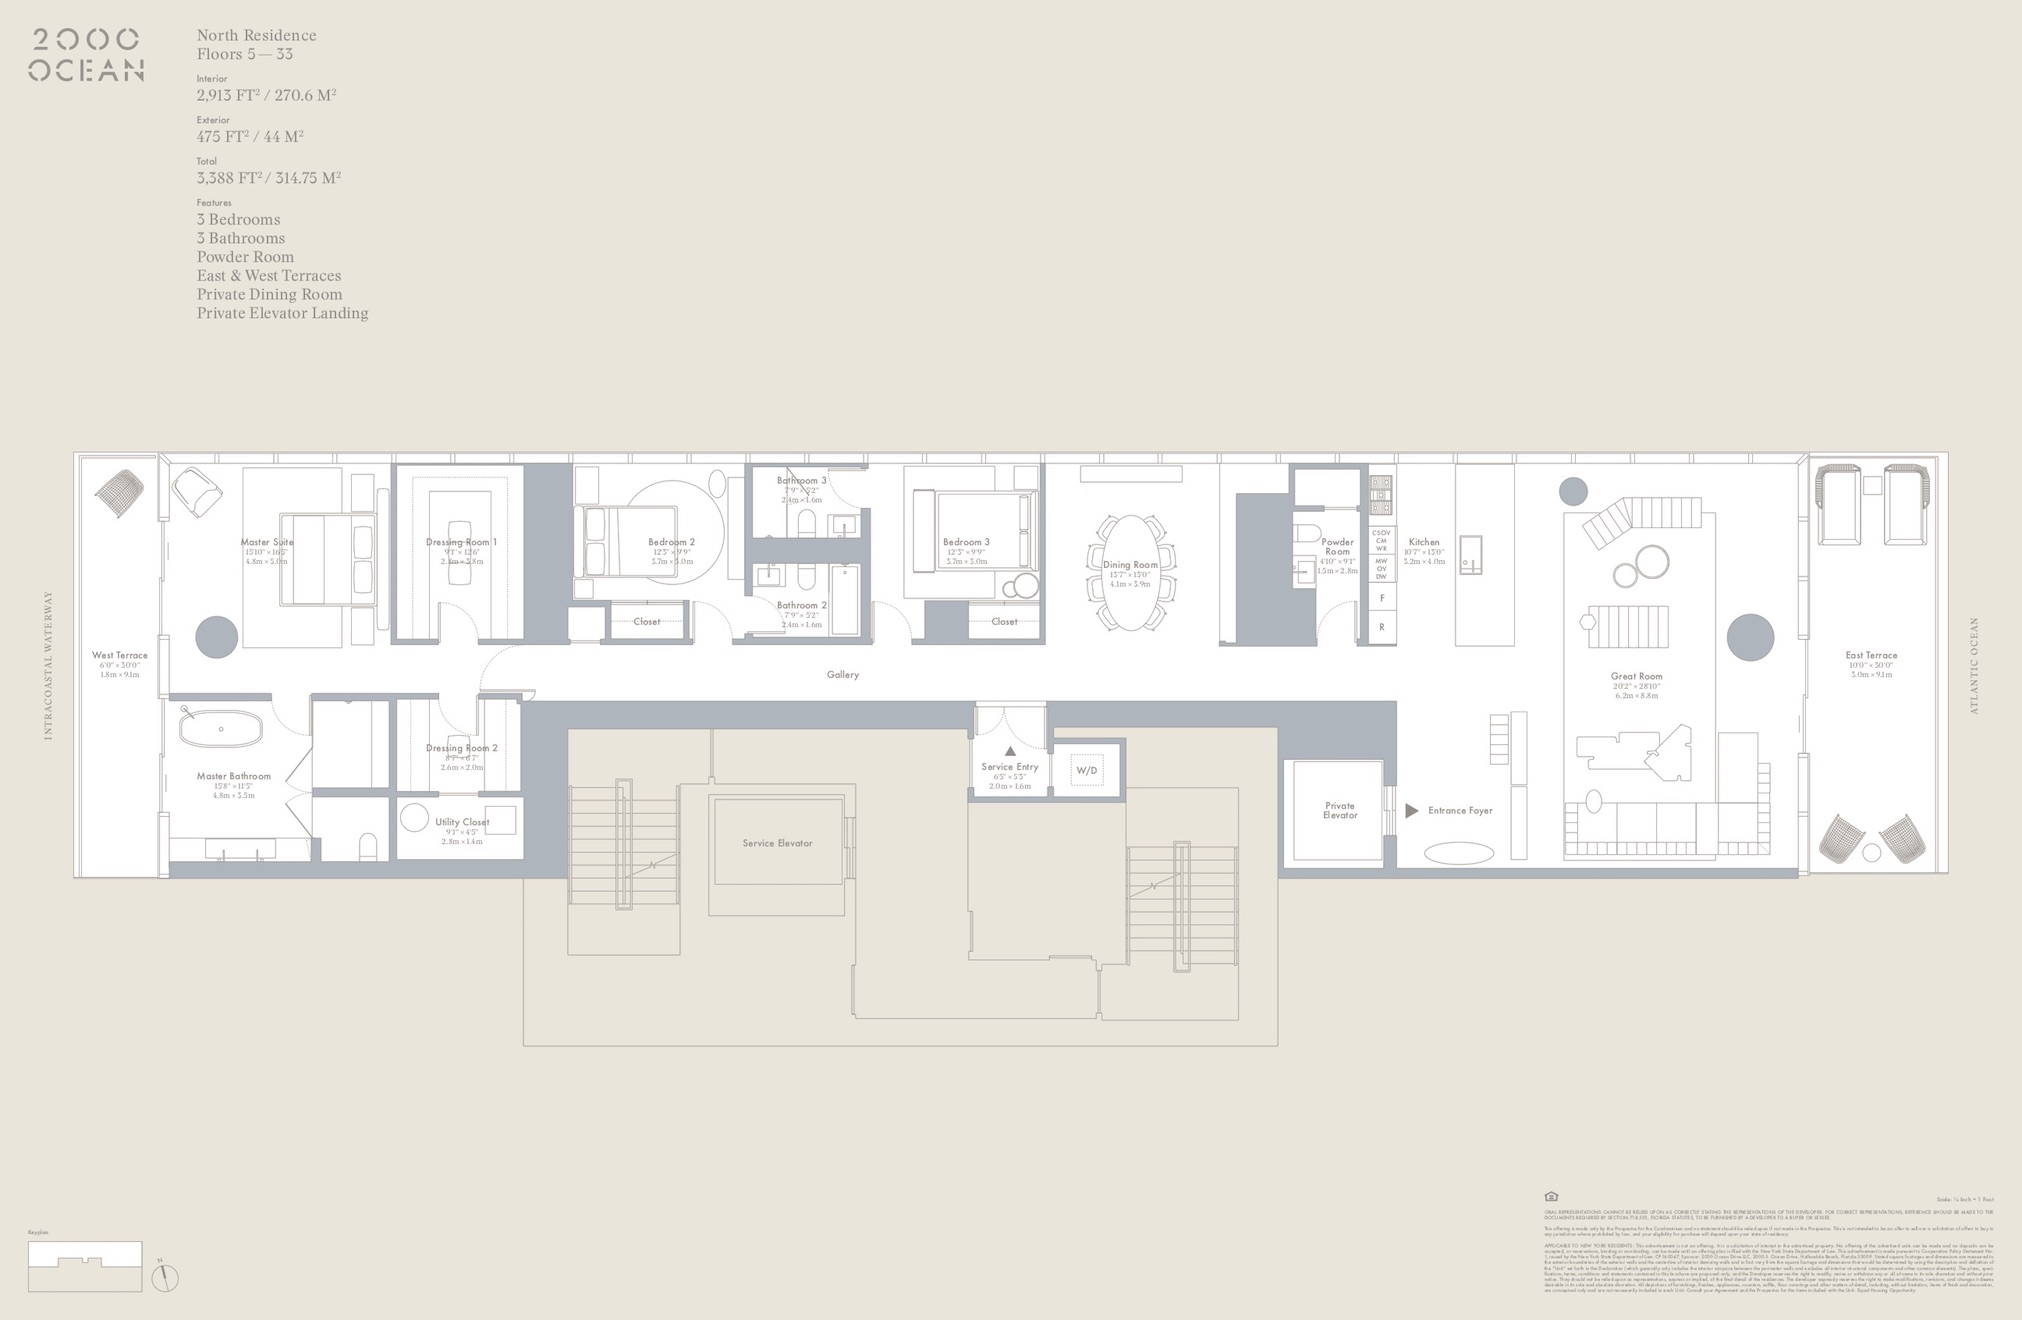 2000 Ocean suite floor plan - north residences